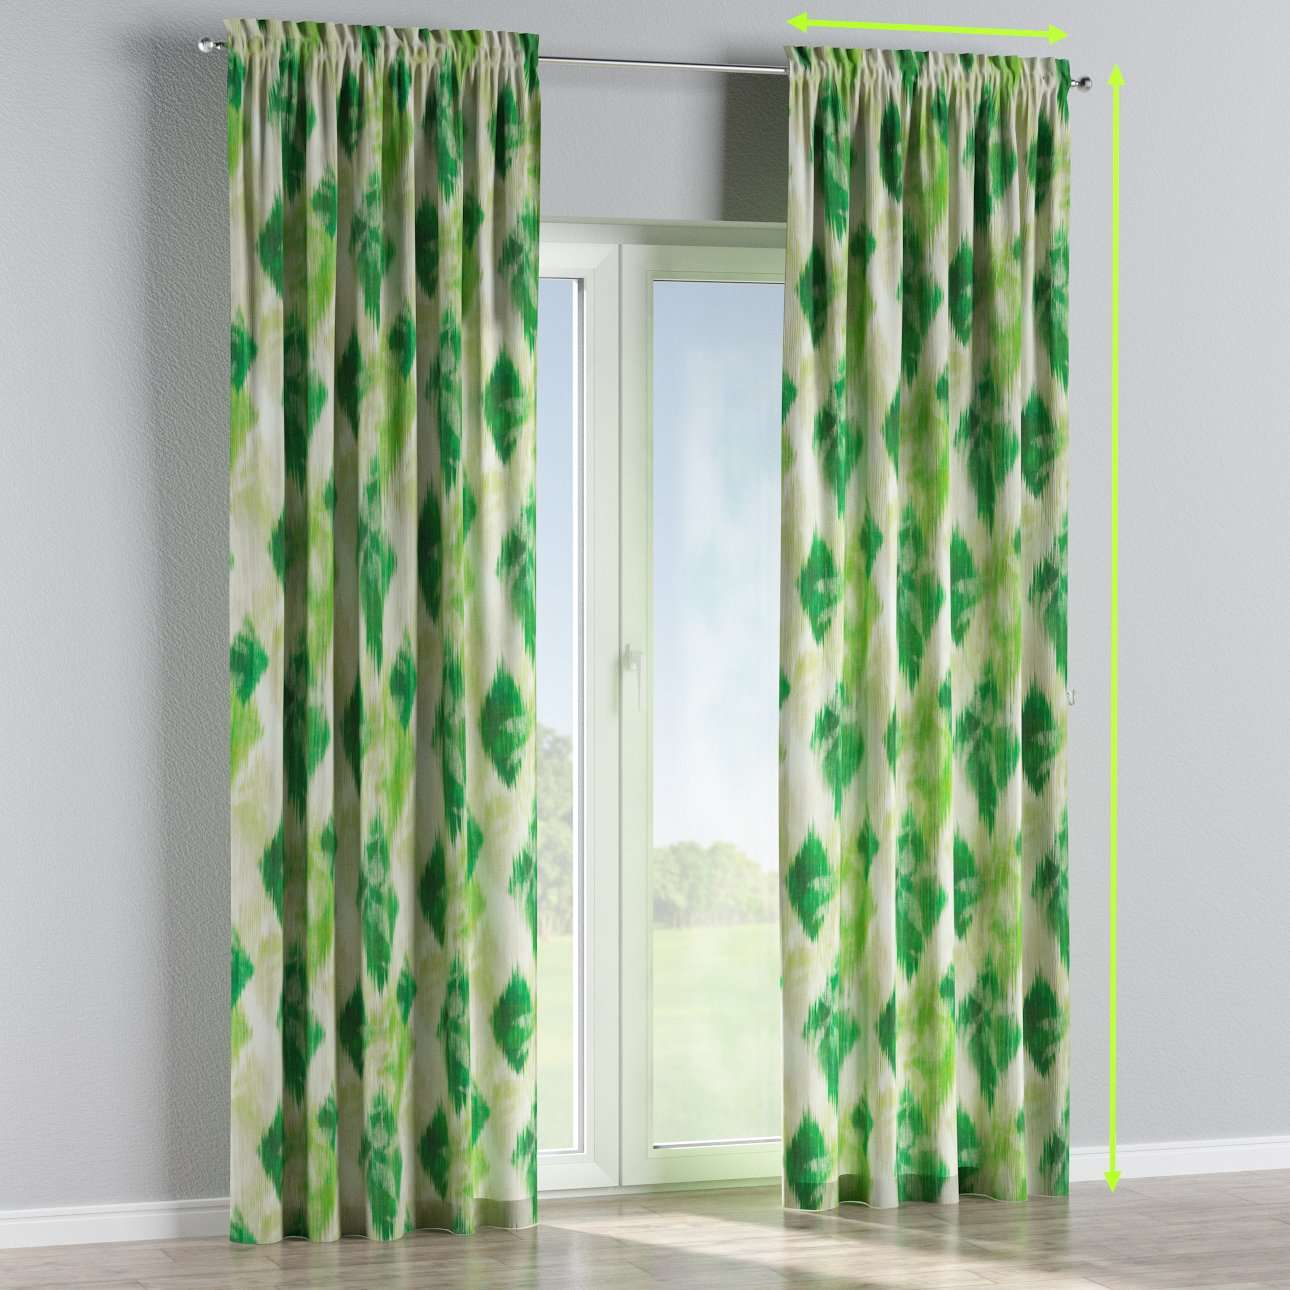 Slot and frill lined curtains in collection Aquarelle, fabric: 140-70